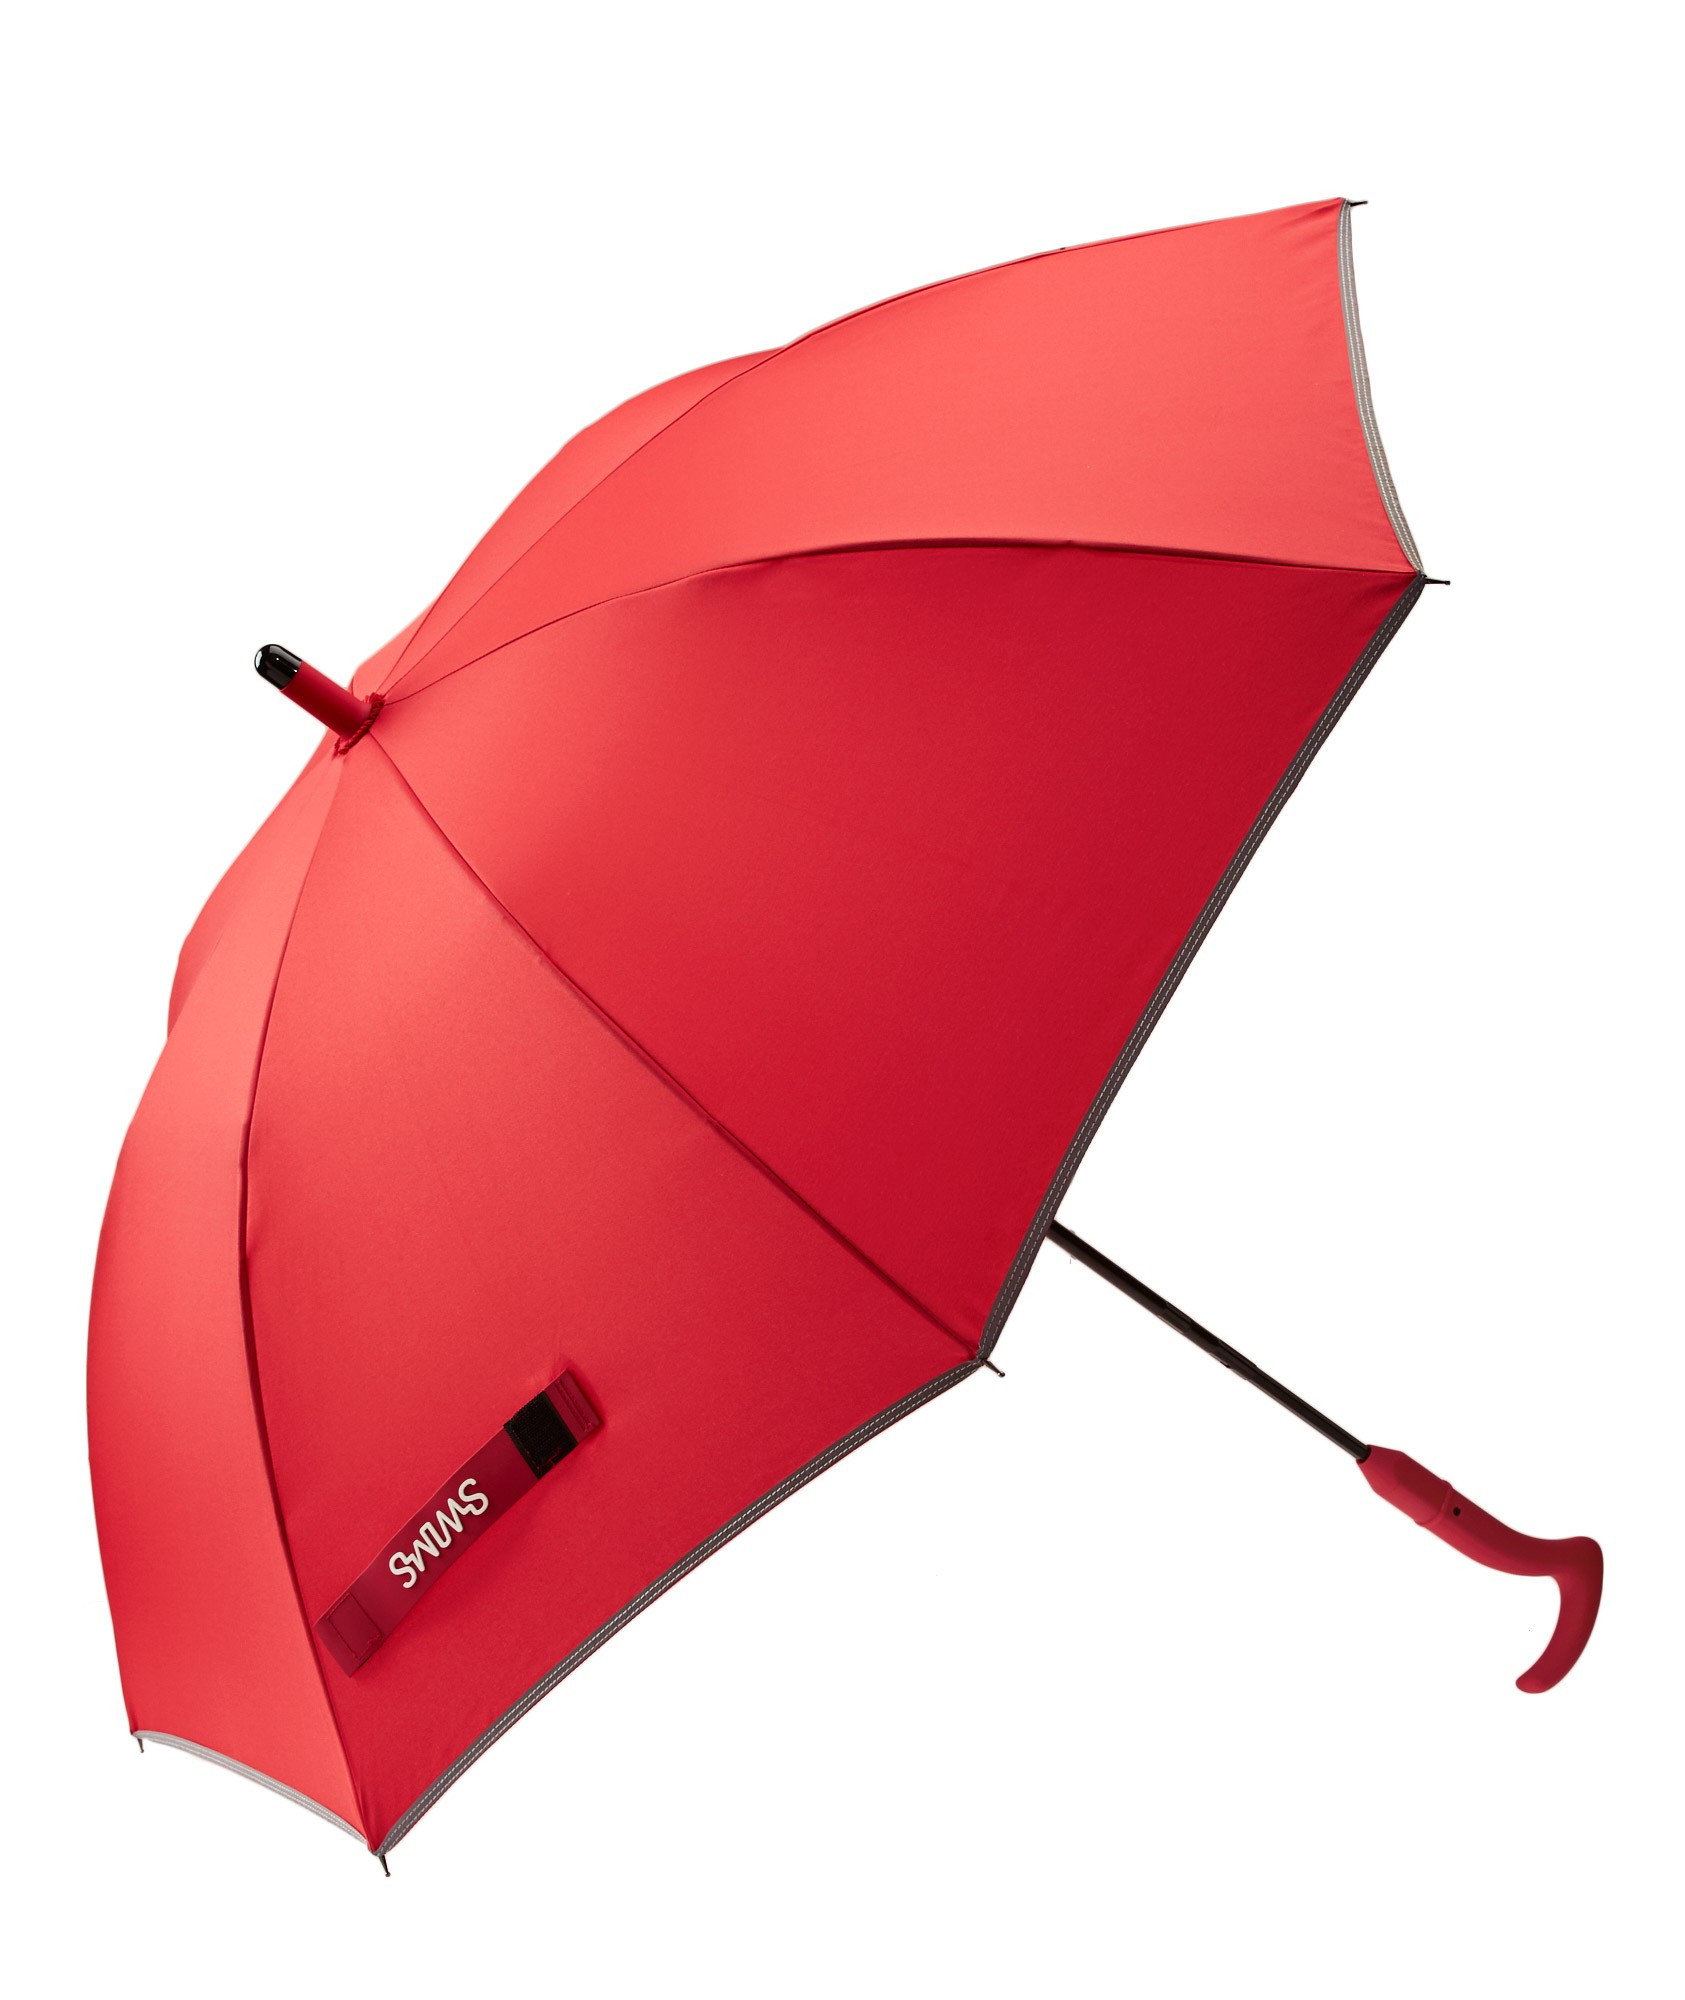 Parapluie rouge Swims